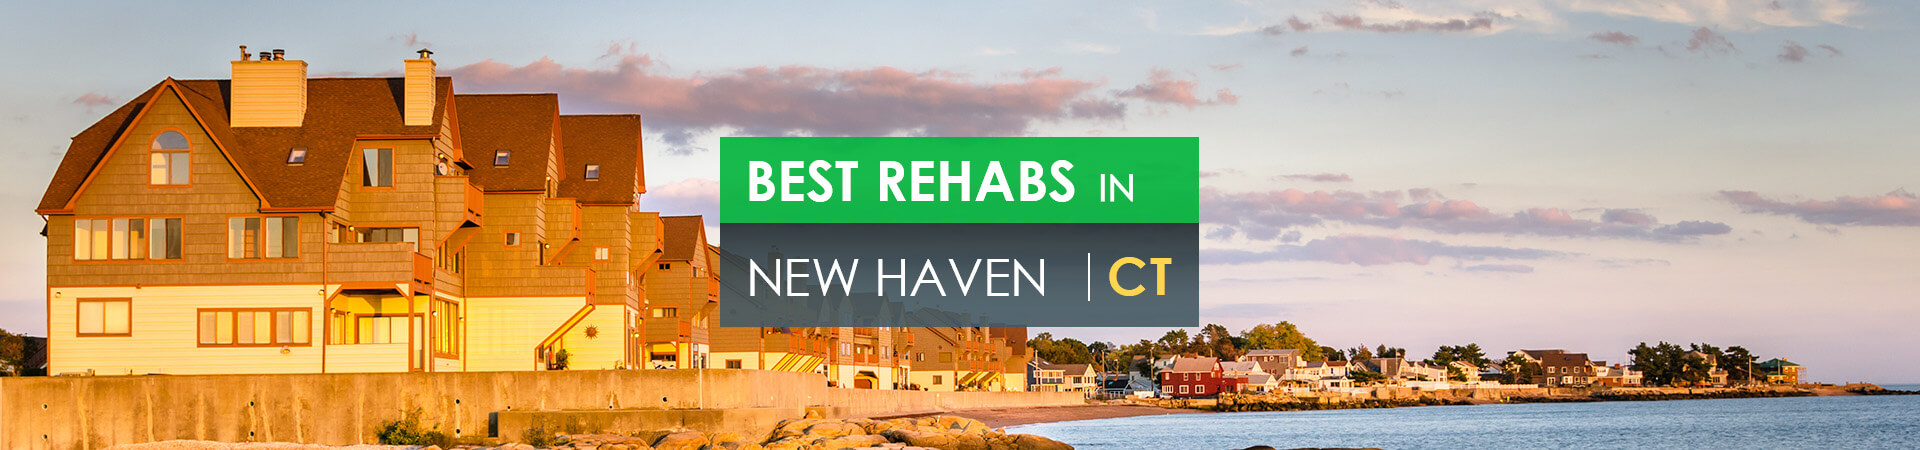 Best rehabs in New Haven, CT